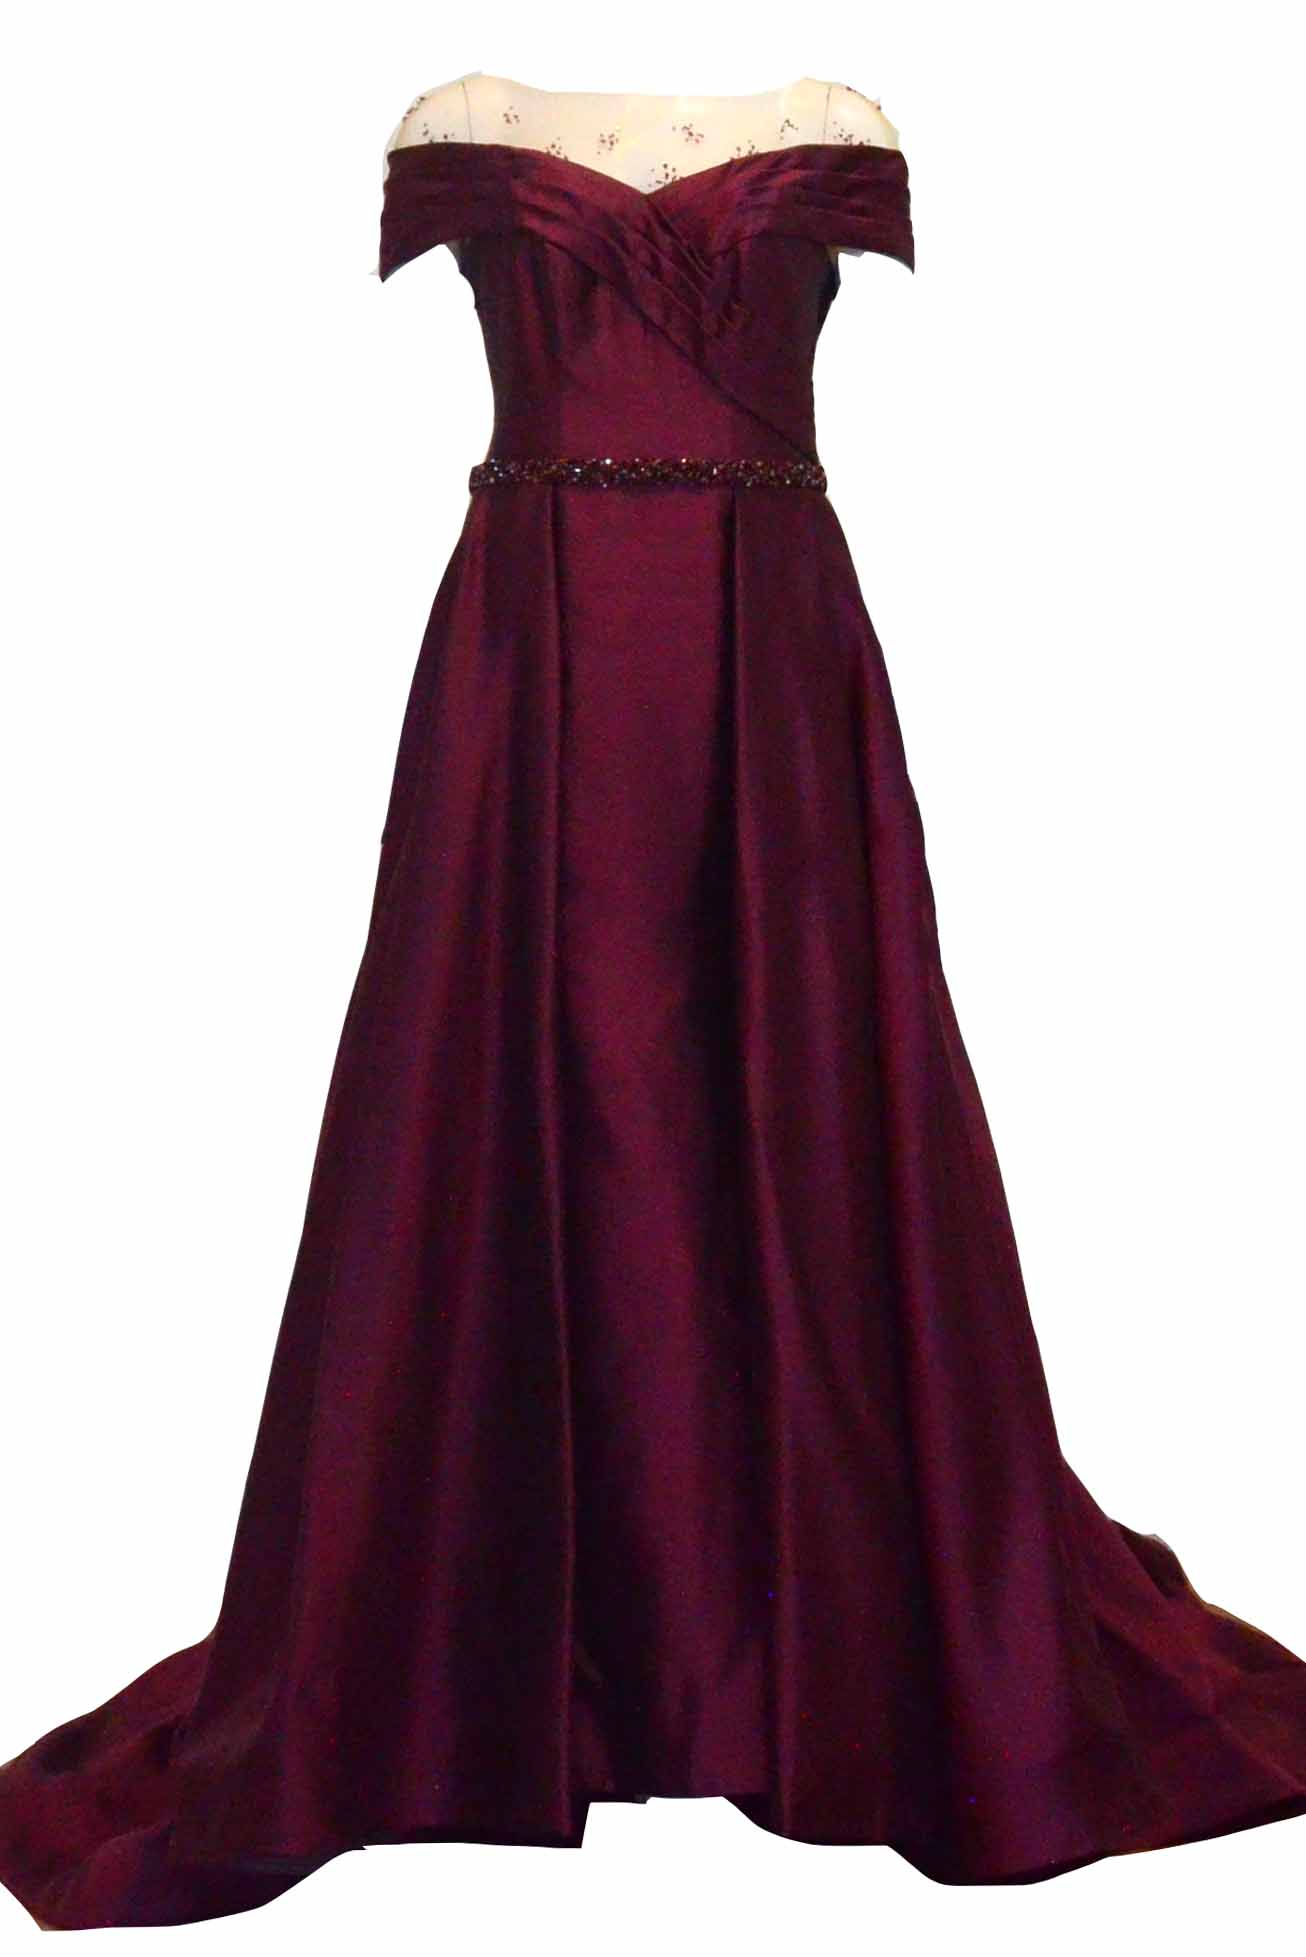 Rent : Rachm Design - Maroon Off Shoulder Satin Gown